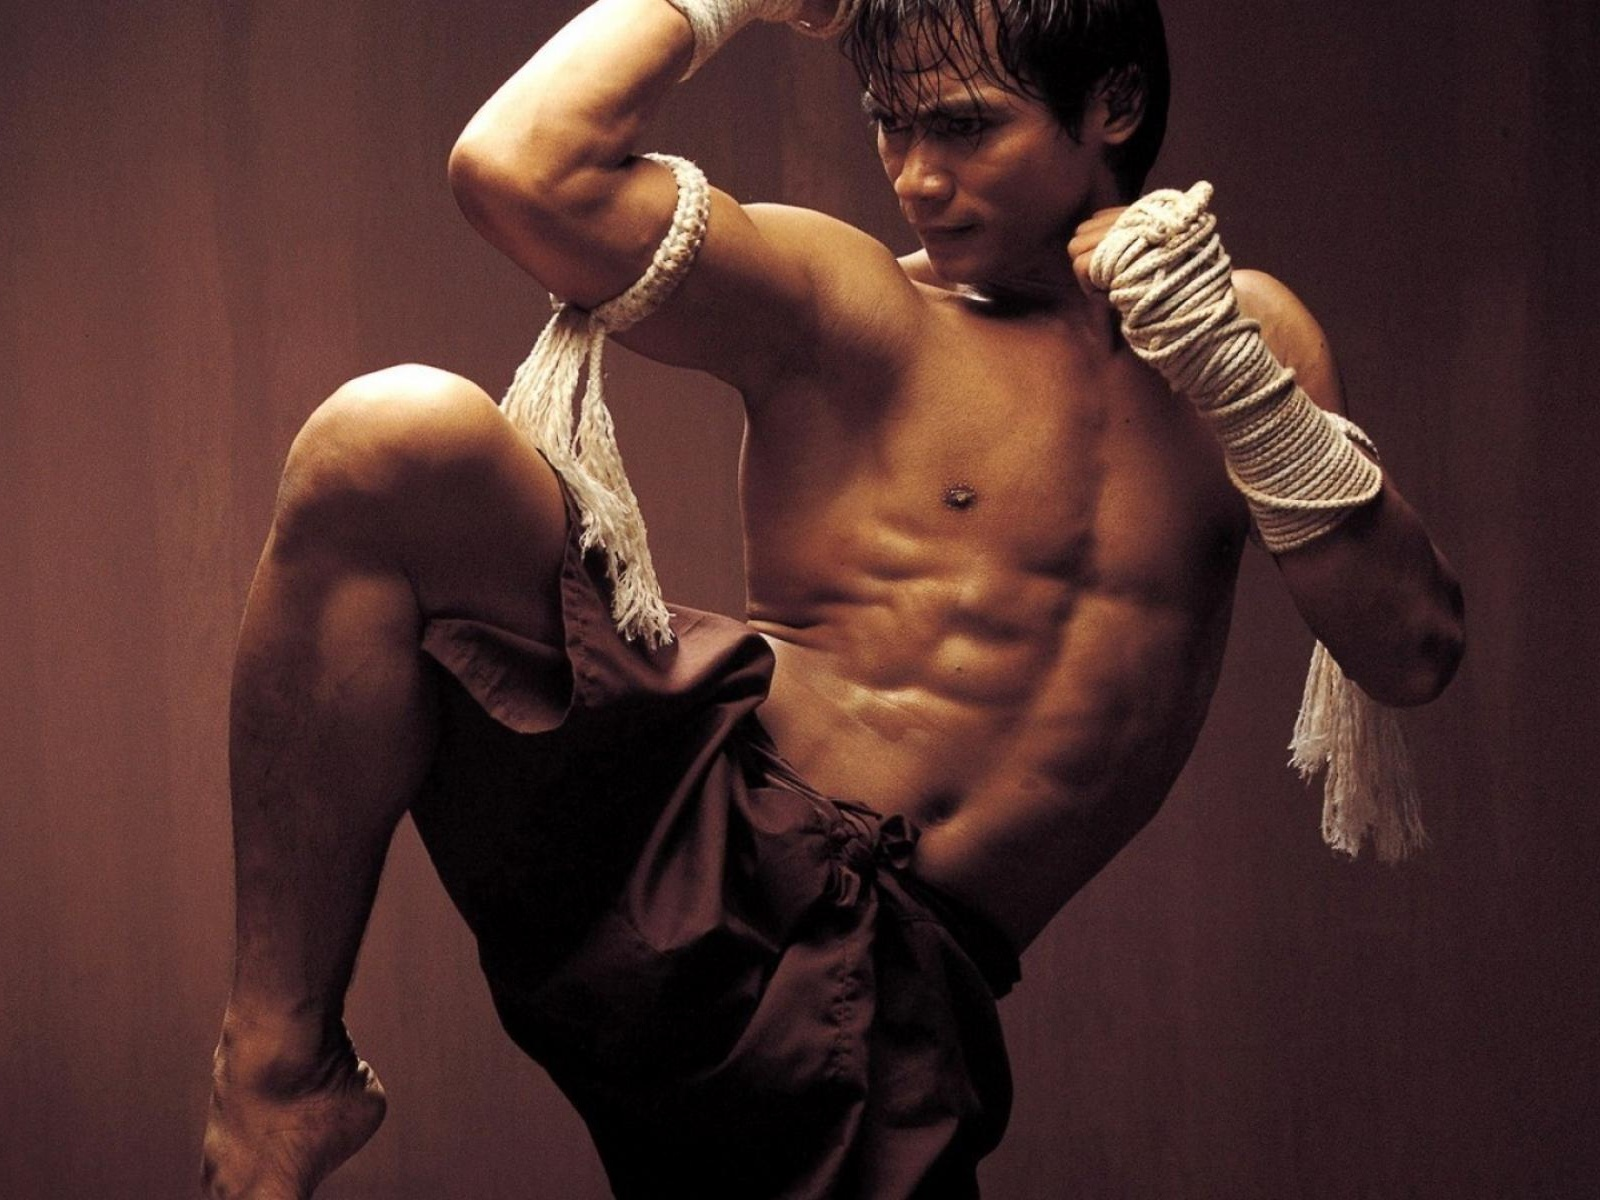 Best Fight Scenes Tony Jaa Ong Bak Movie